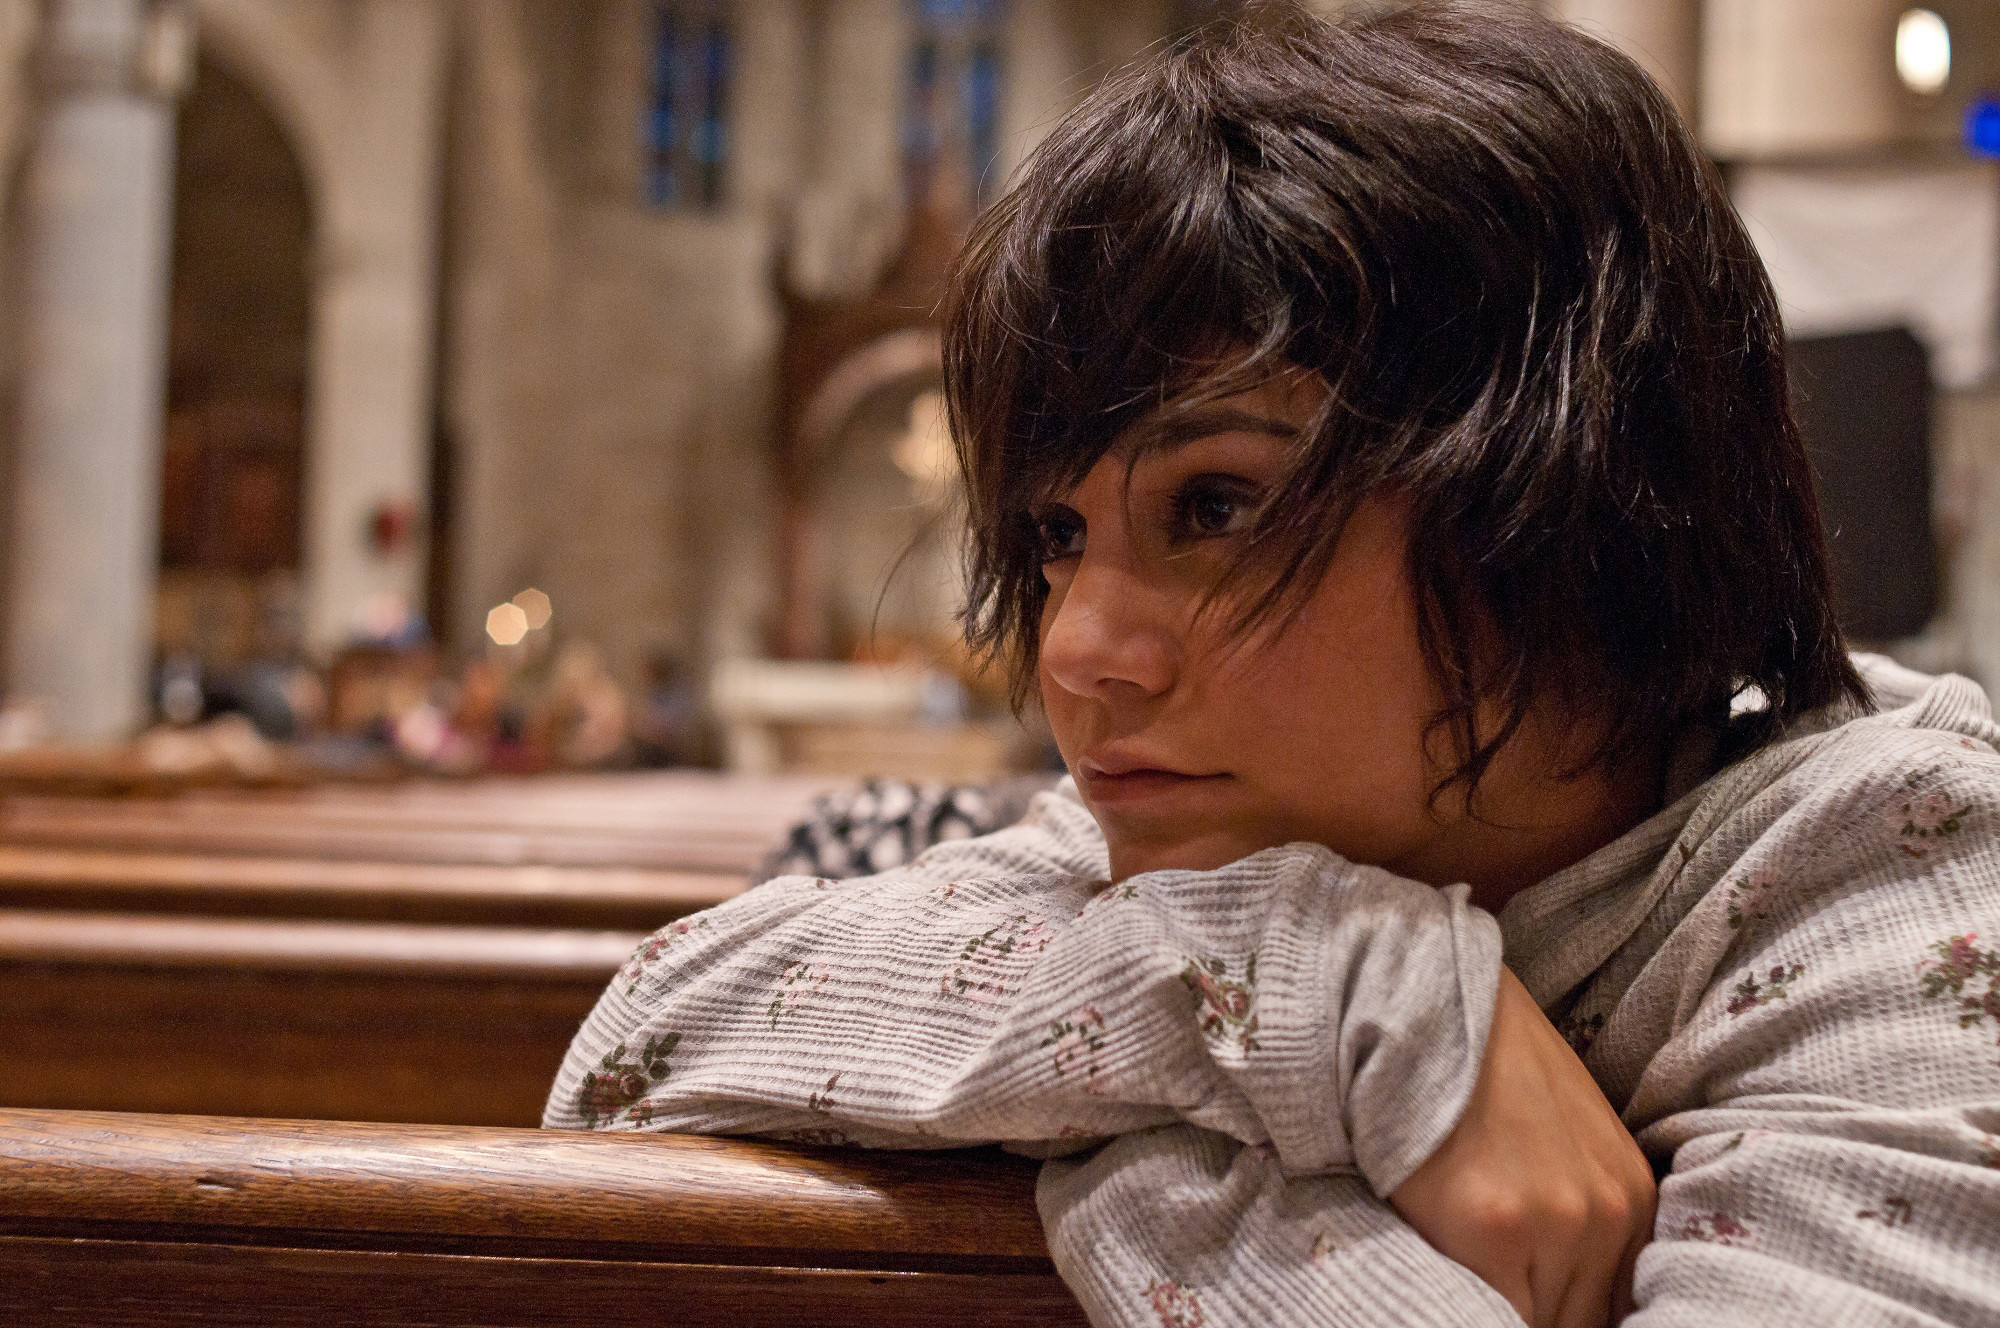 A homeless, young girl in need of a break, Vanessa Hudgens #giveaway